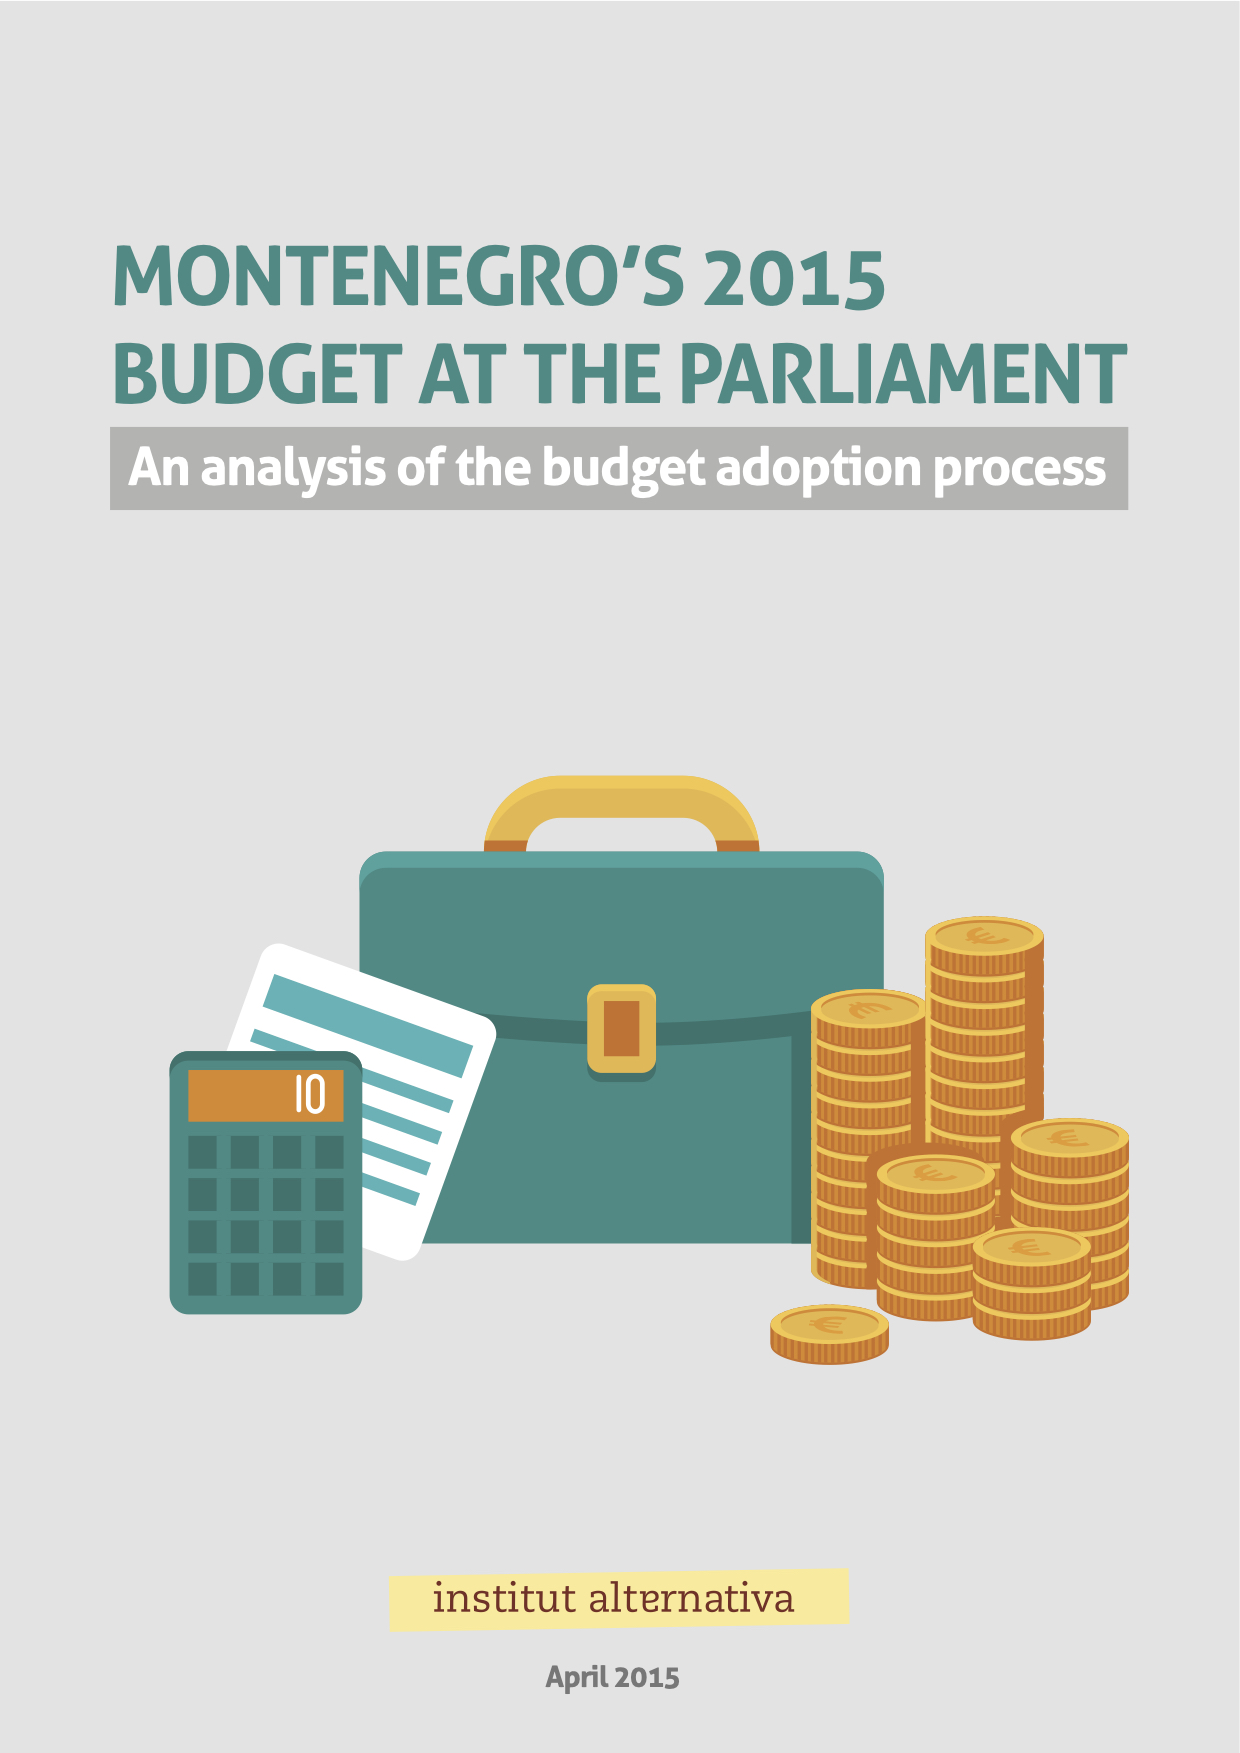 Montenegro's 2015 Budget at the Parliament